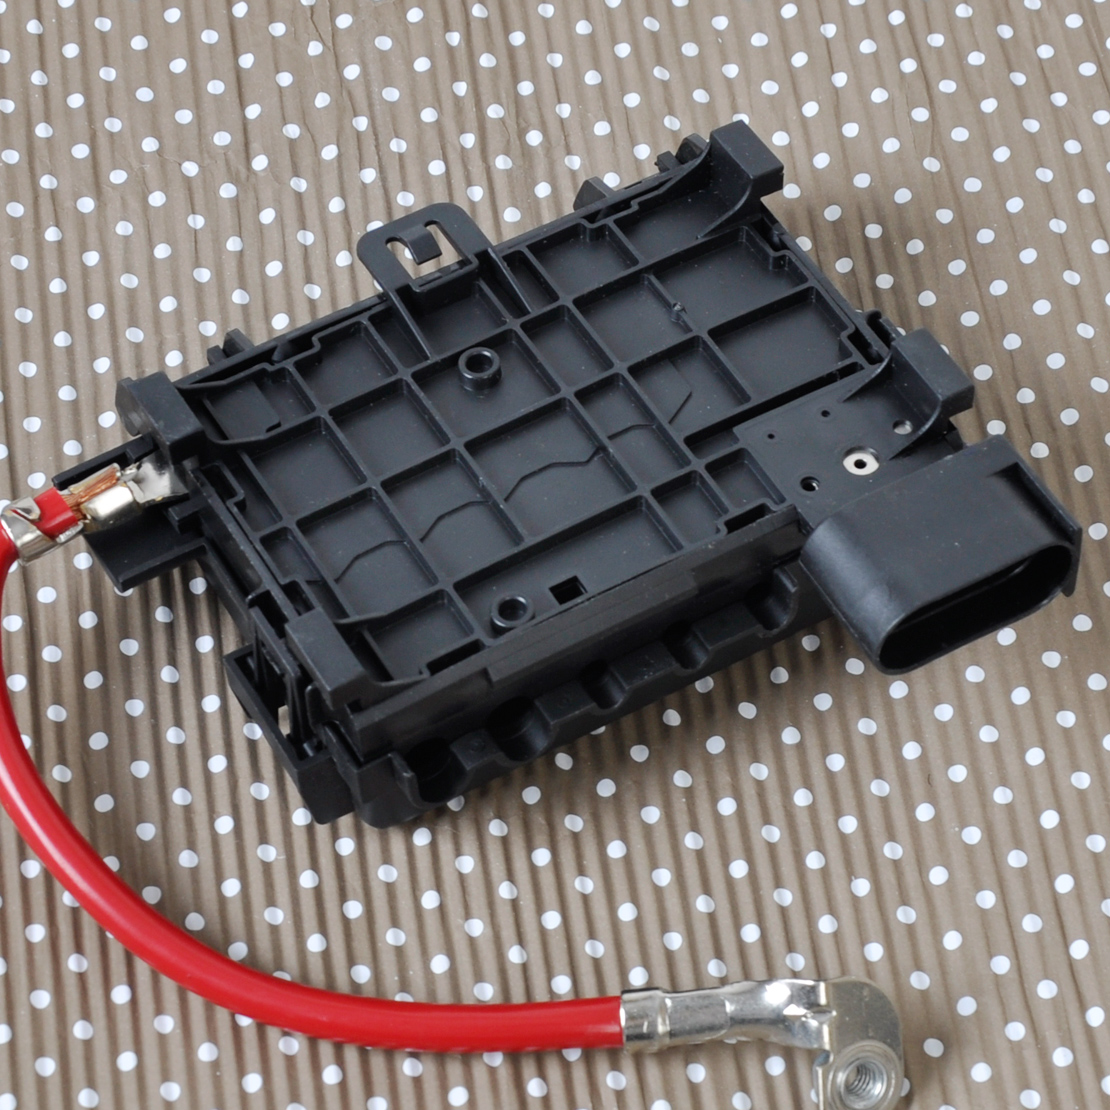 hight resolution of new fuse box battery terminal fit for vw beetle golf golf city jetta photo show skoda octavia